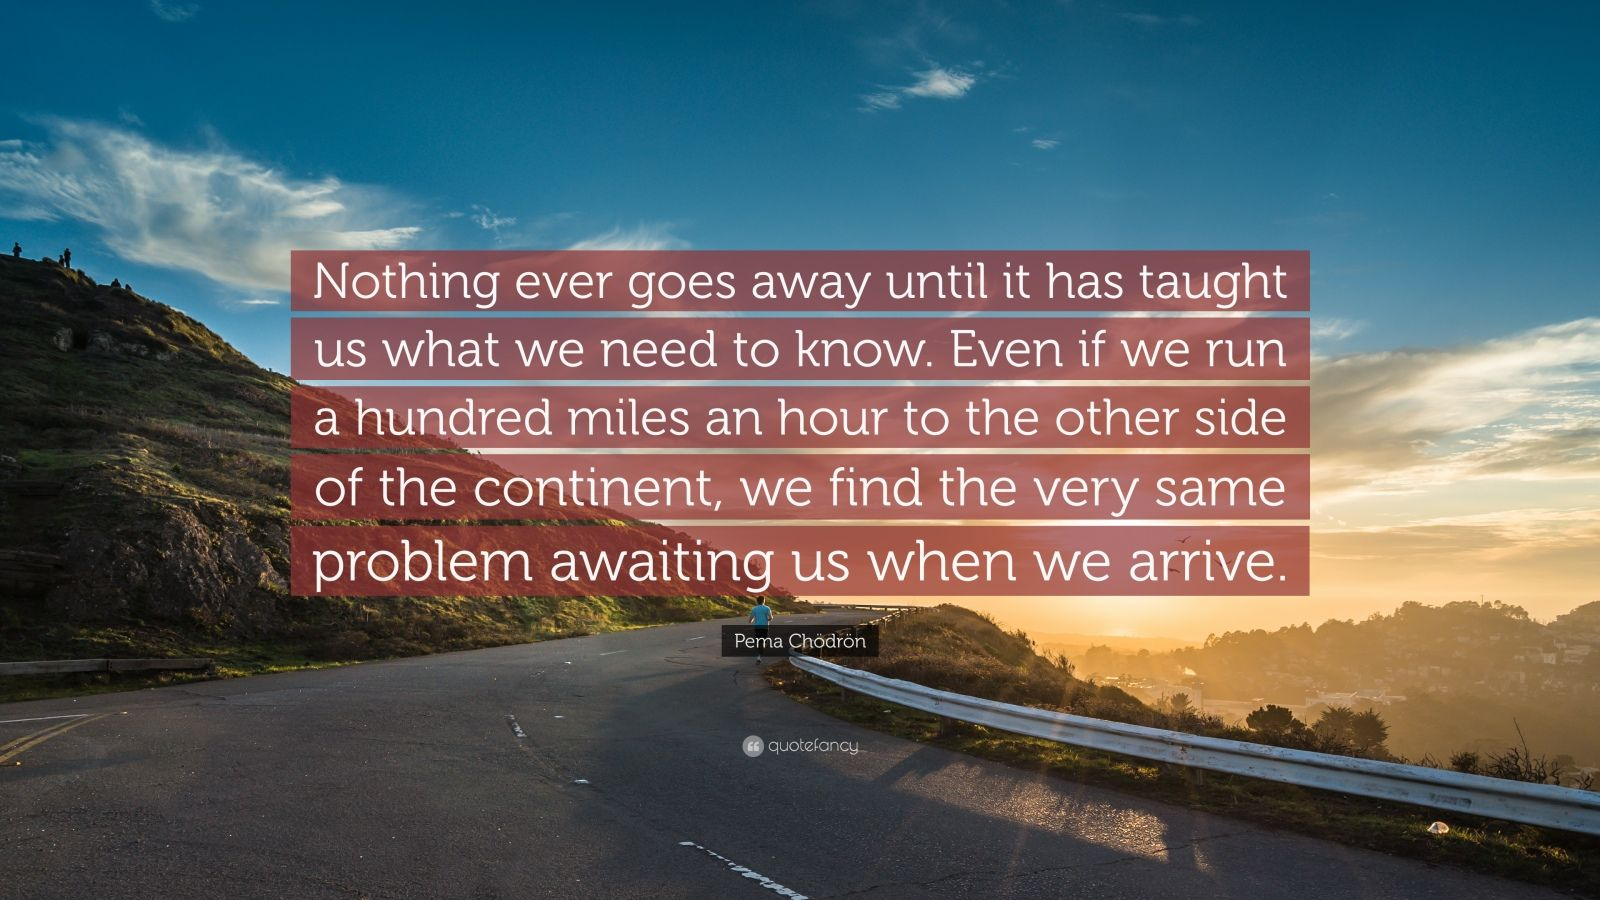 "Pema Chödrön Quote: ""Nothing ever goes away until it has taught us what we need to know. Even if we run a hundred miles an hour to the other side of the continent, we find the very same problem awaiting us when we arrive."""